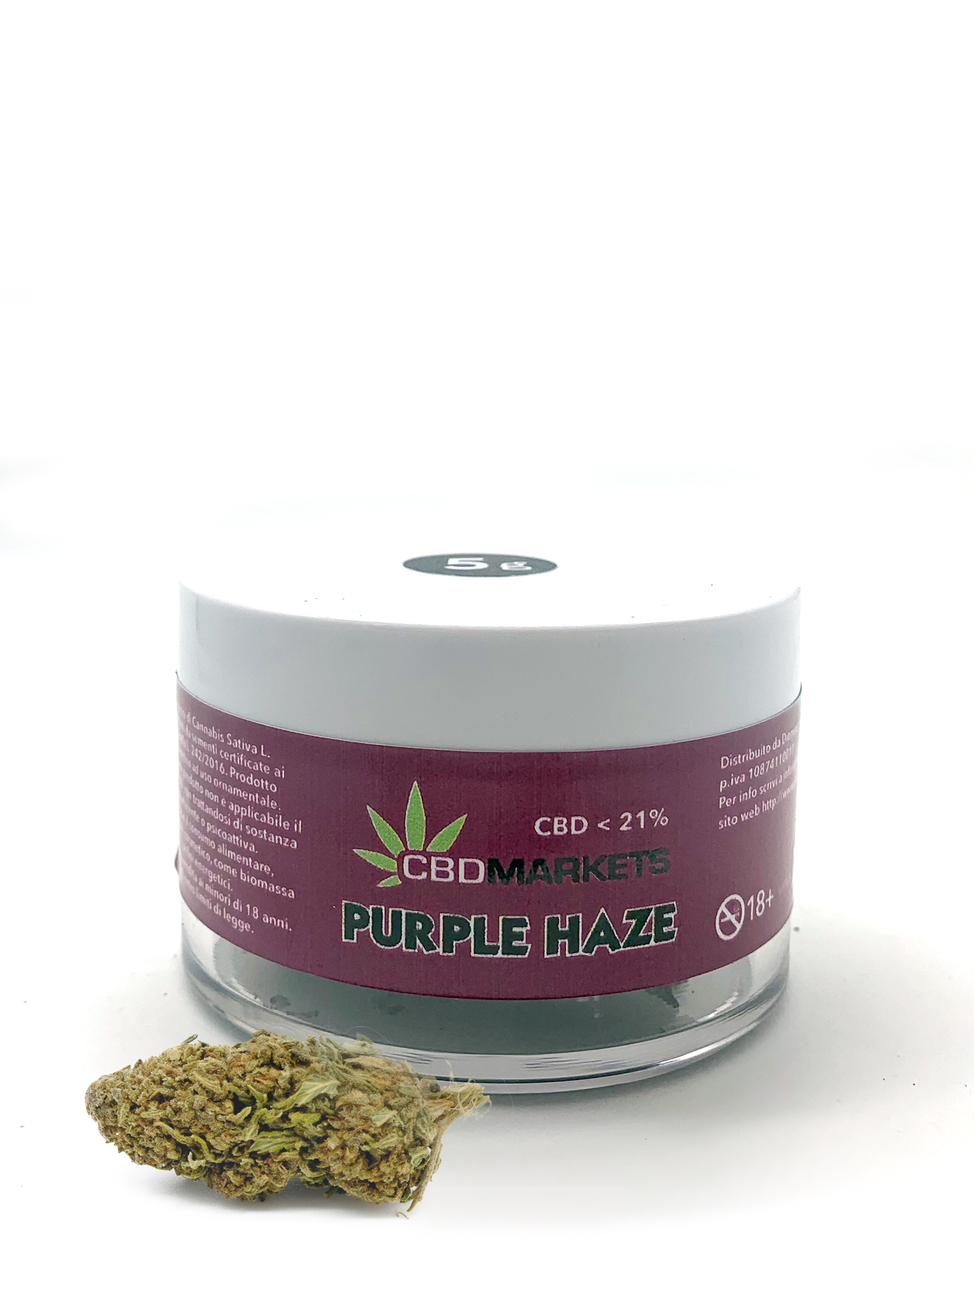 Cbdmarkets Purple Haze barattolo 21% cbd 5G.